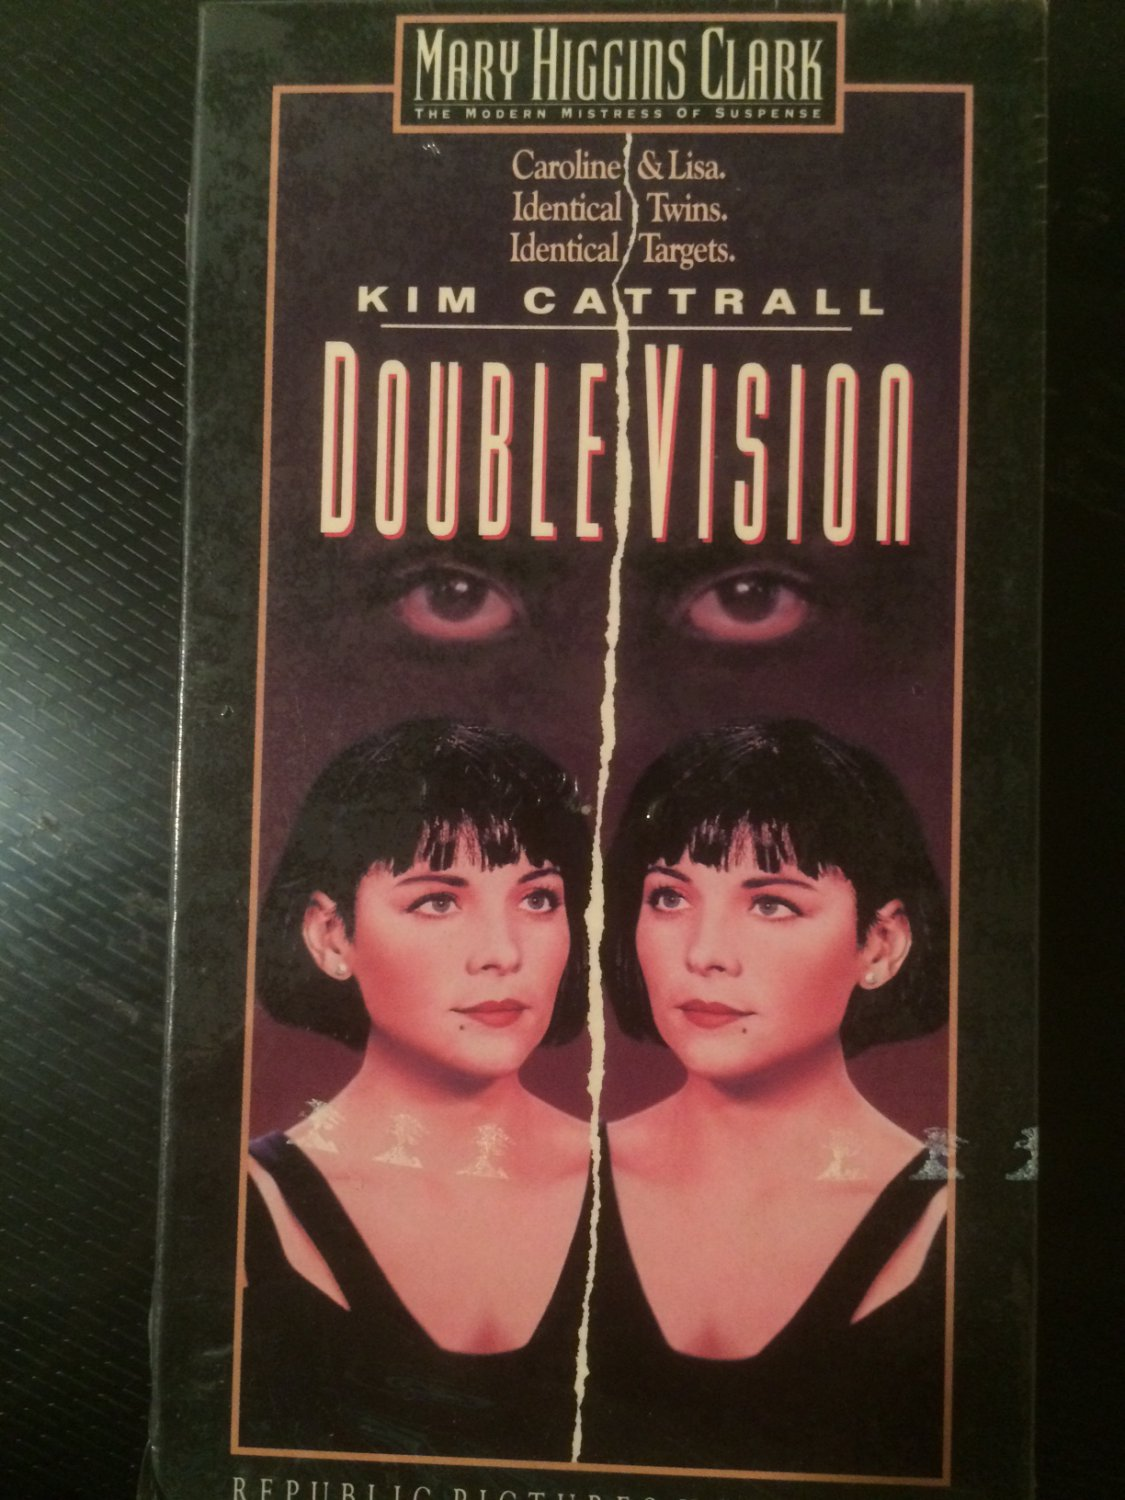 VHS - Double Vision (Kim Cattrall) - Used - NOT ON DVD